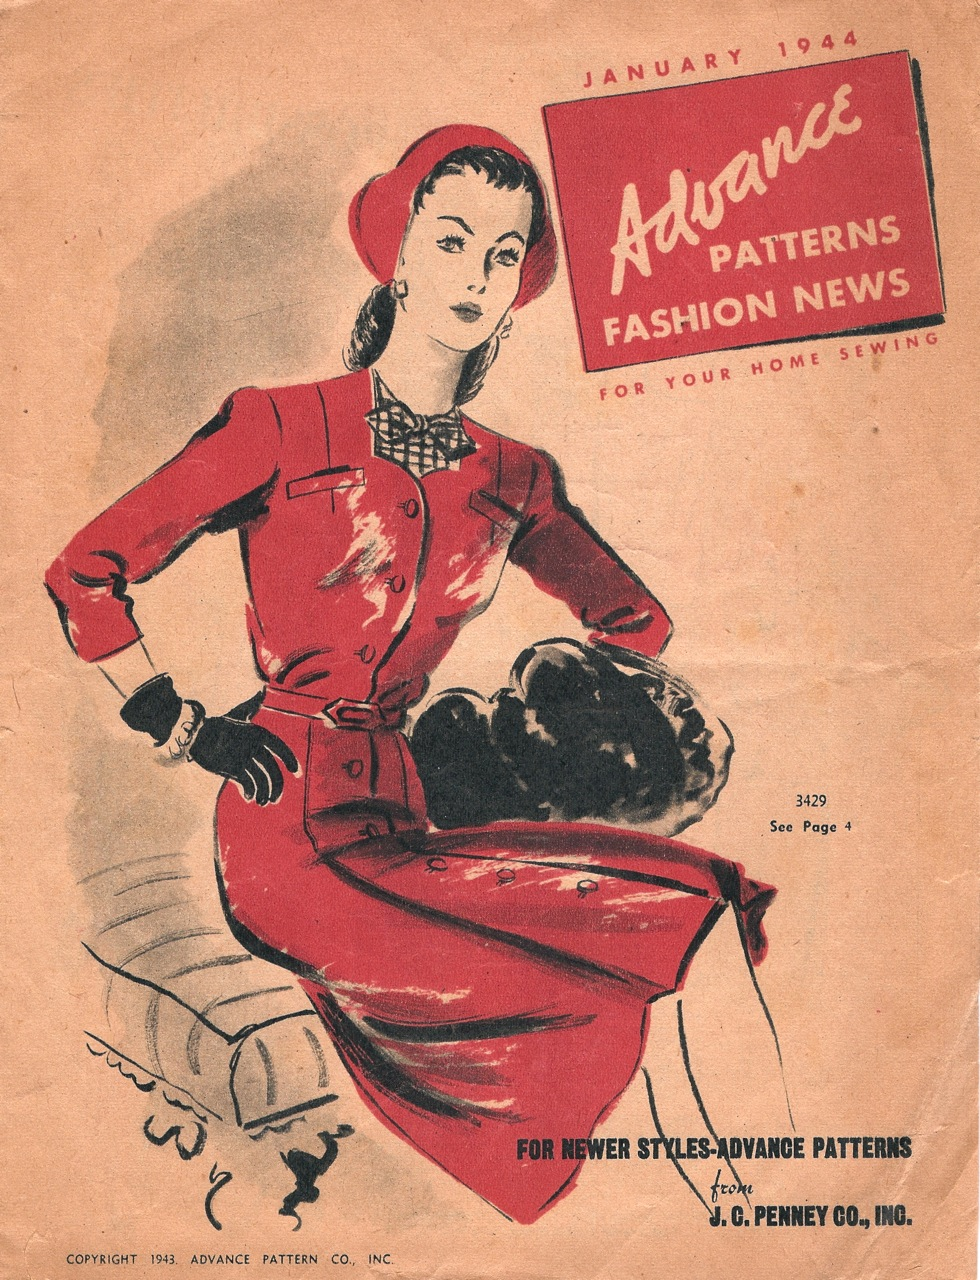 Advance Fashion News January 1944